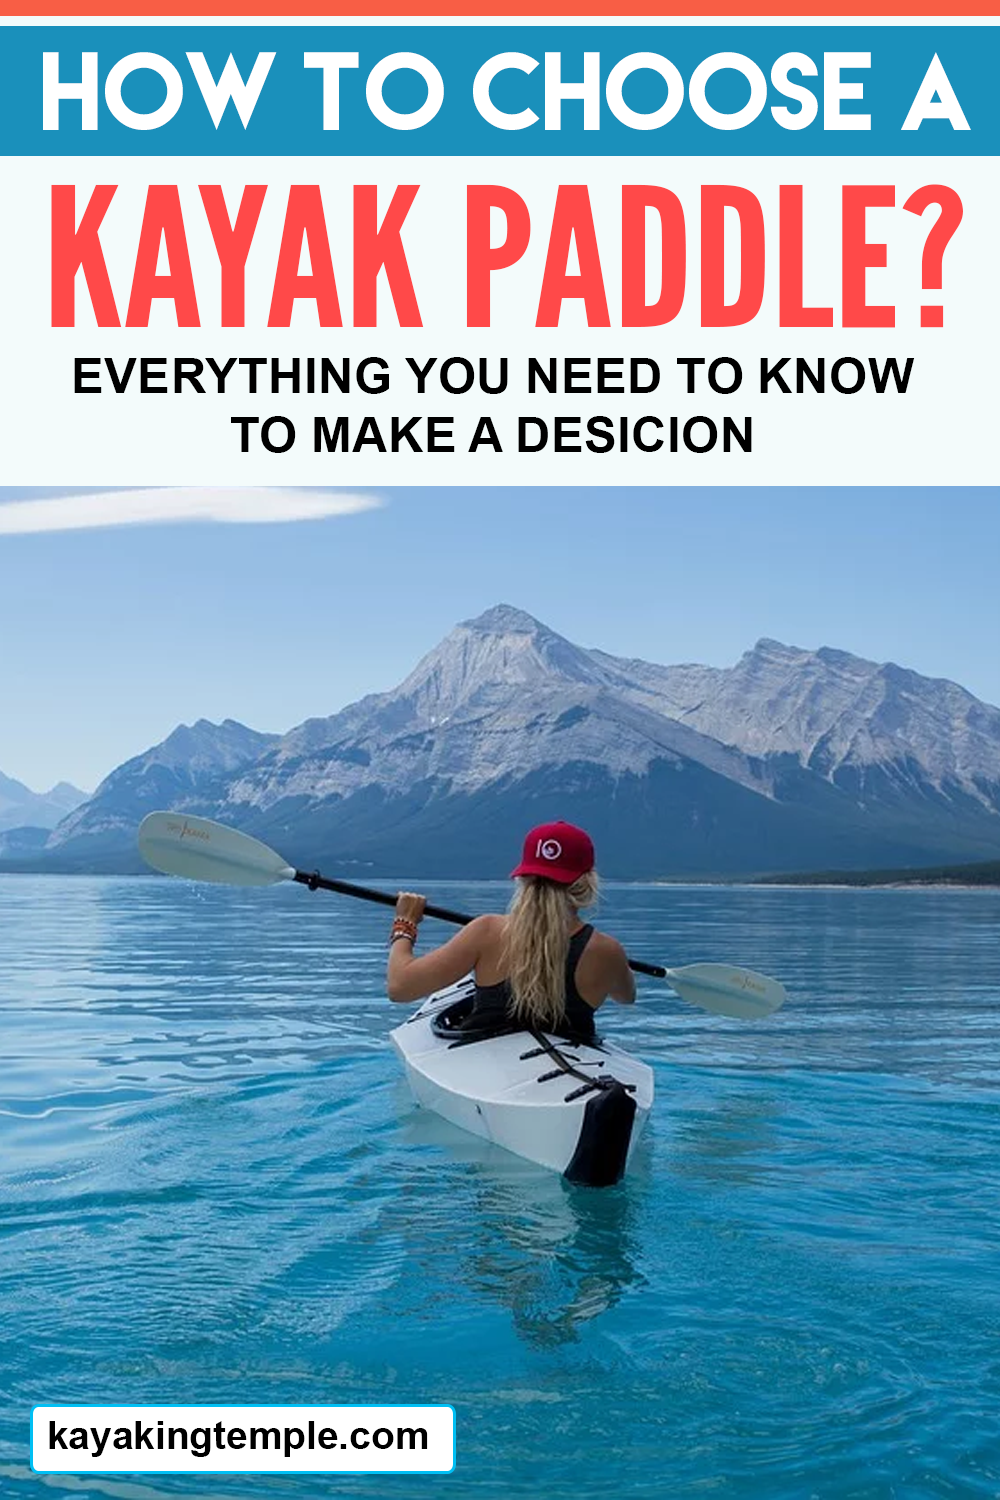 kayak paddle guide